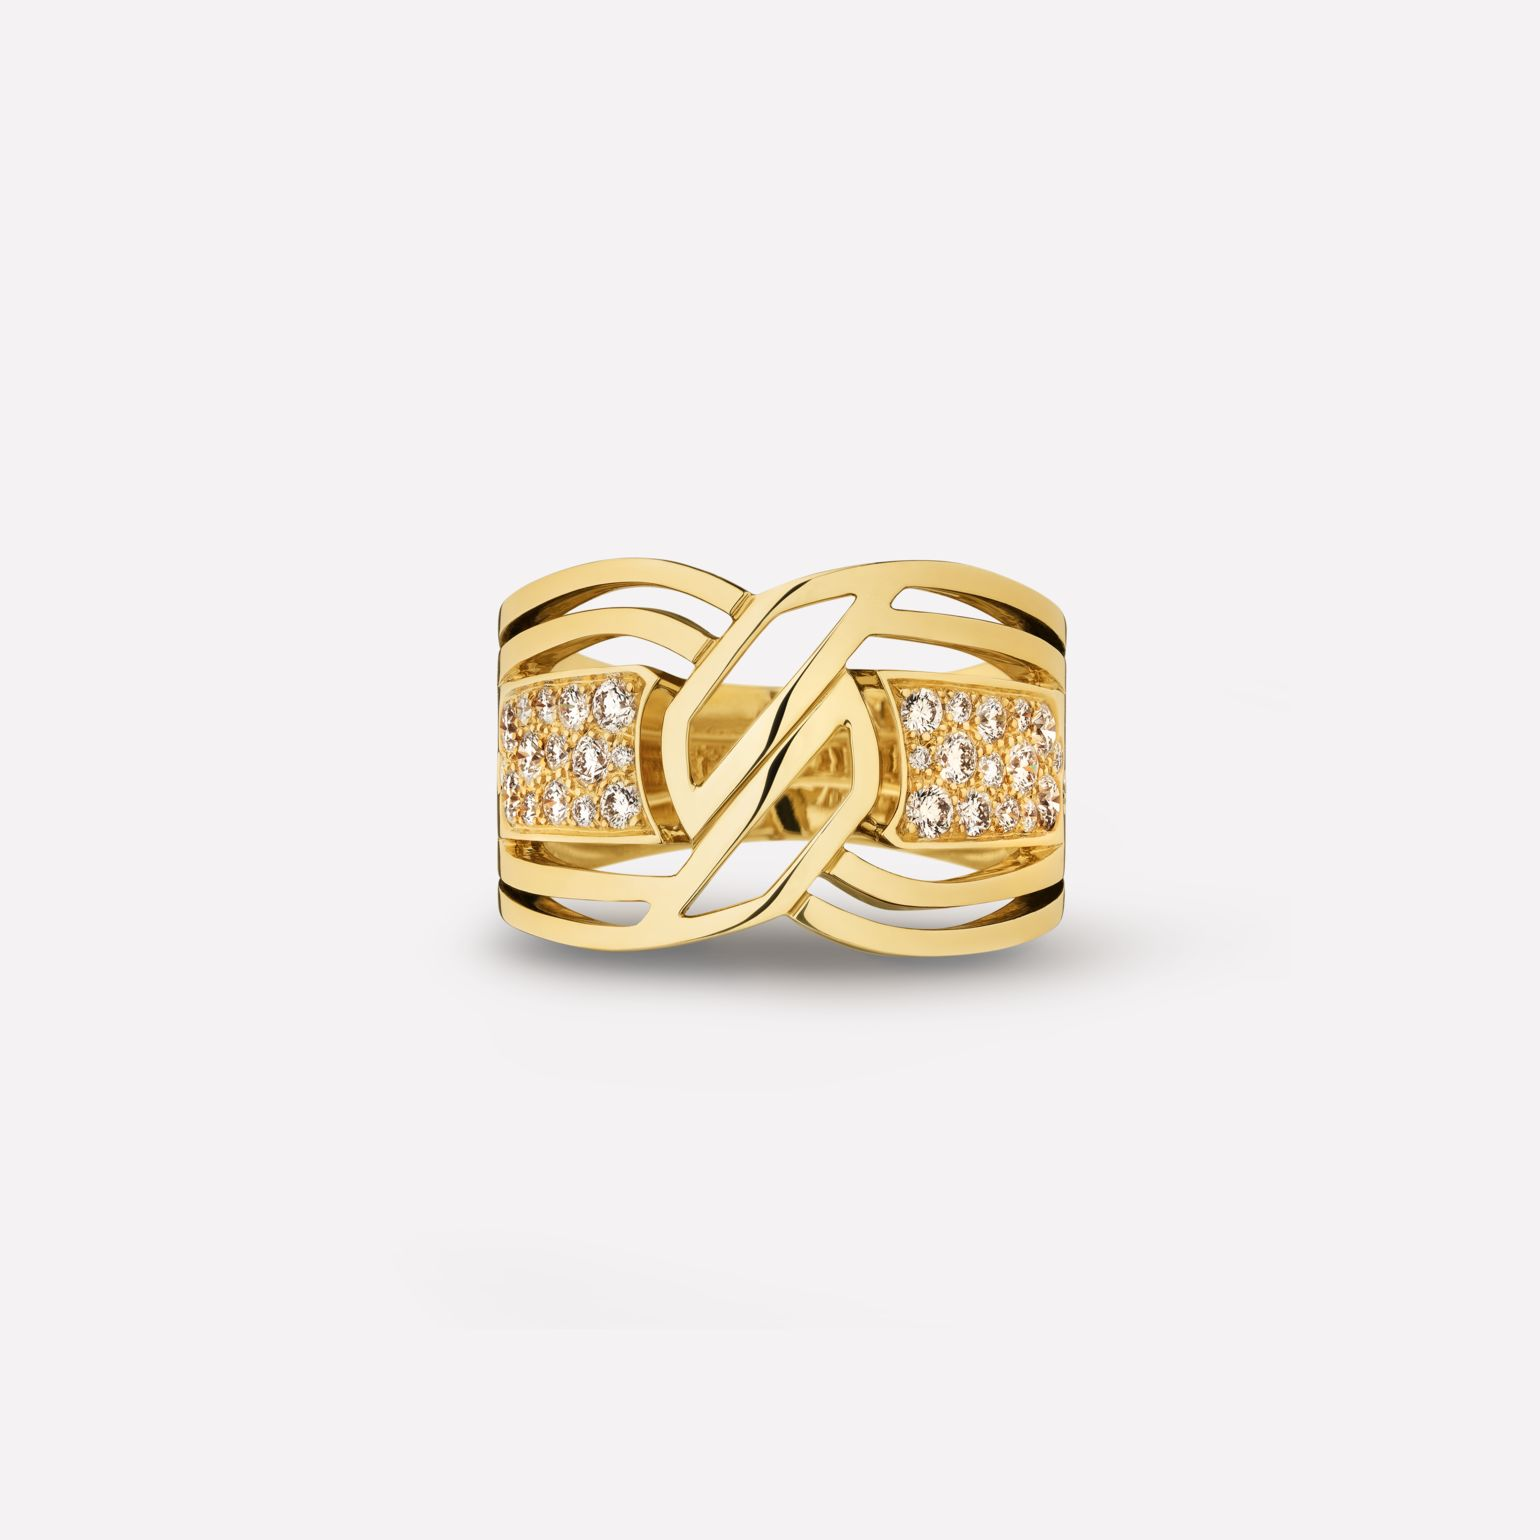 My Golden Link ring 18K yellow gold and diamonds